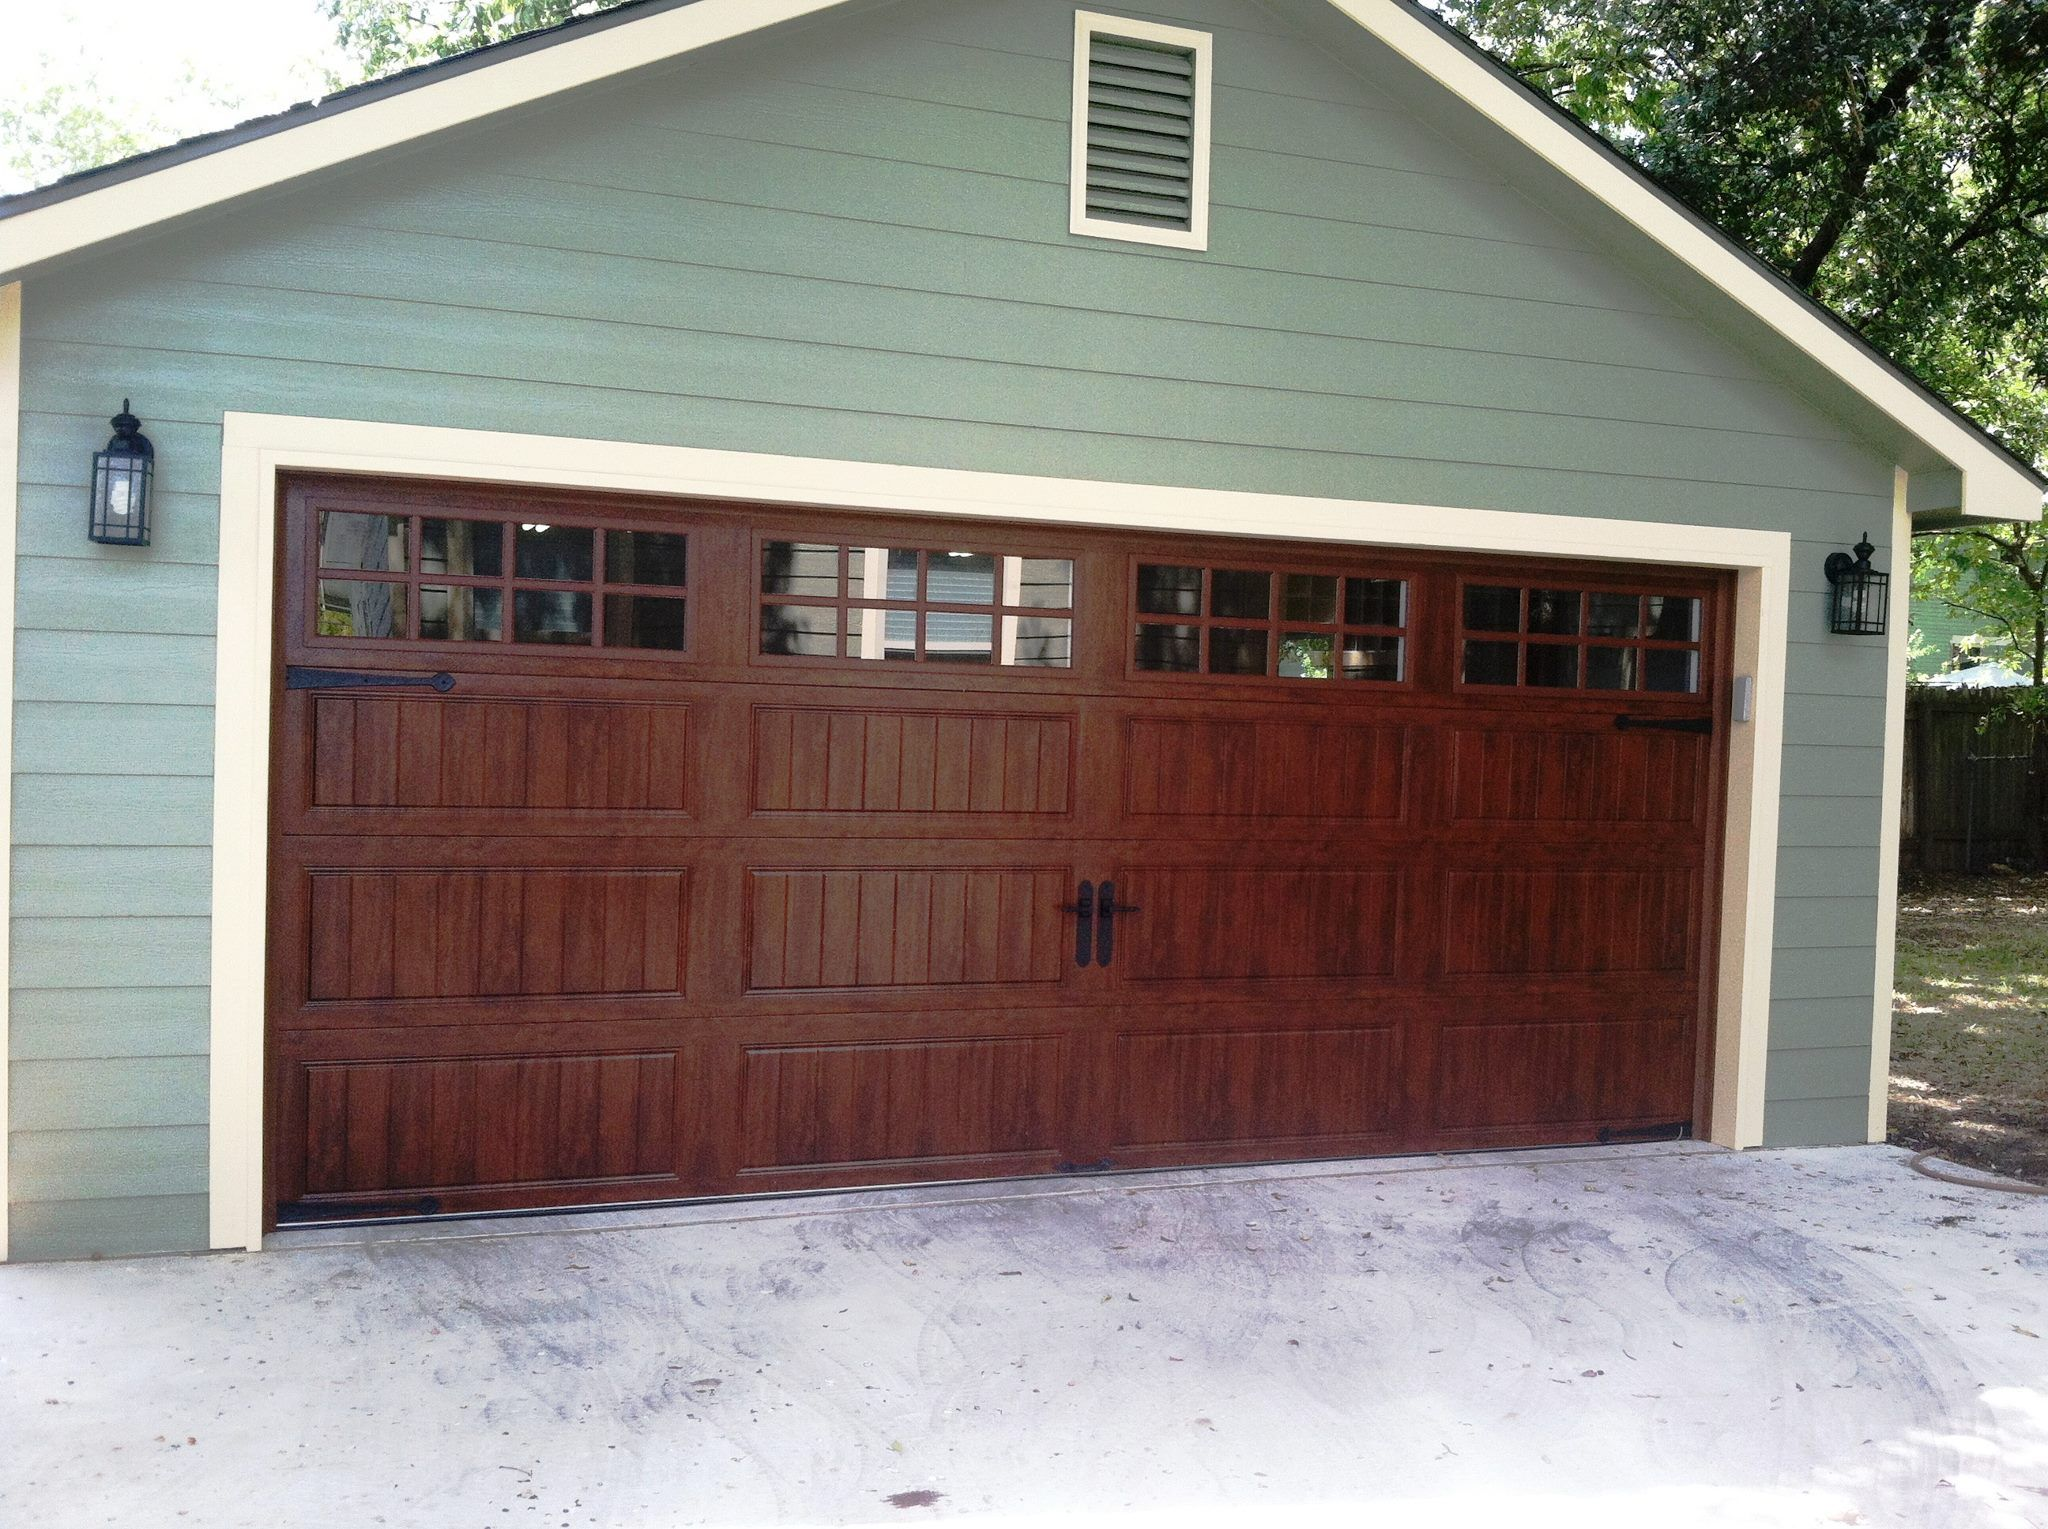 Steel Garage Doors Gallery Collection Garage Door Colors Garage Doors Faux Wood Garage Door